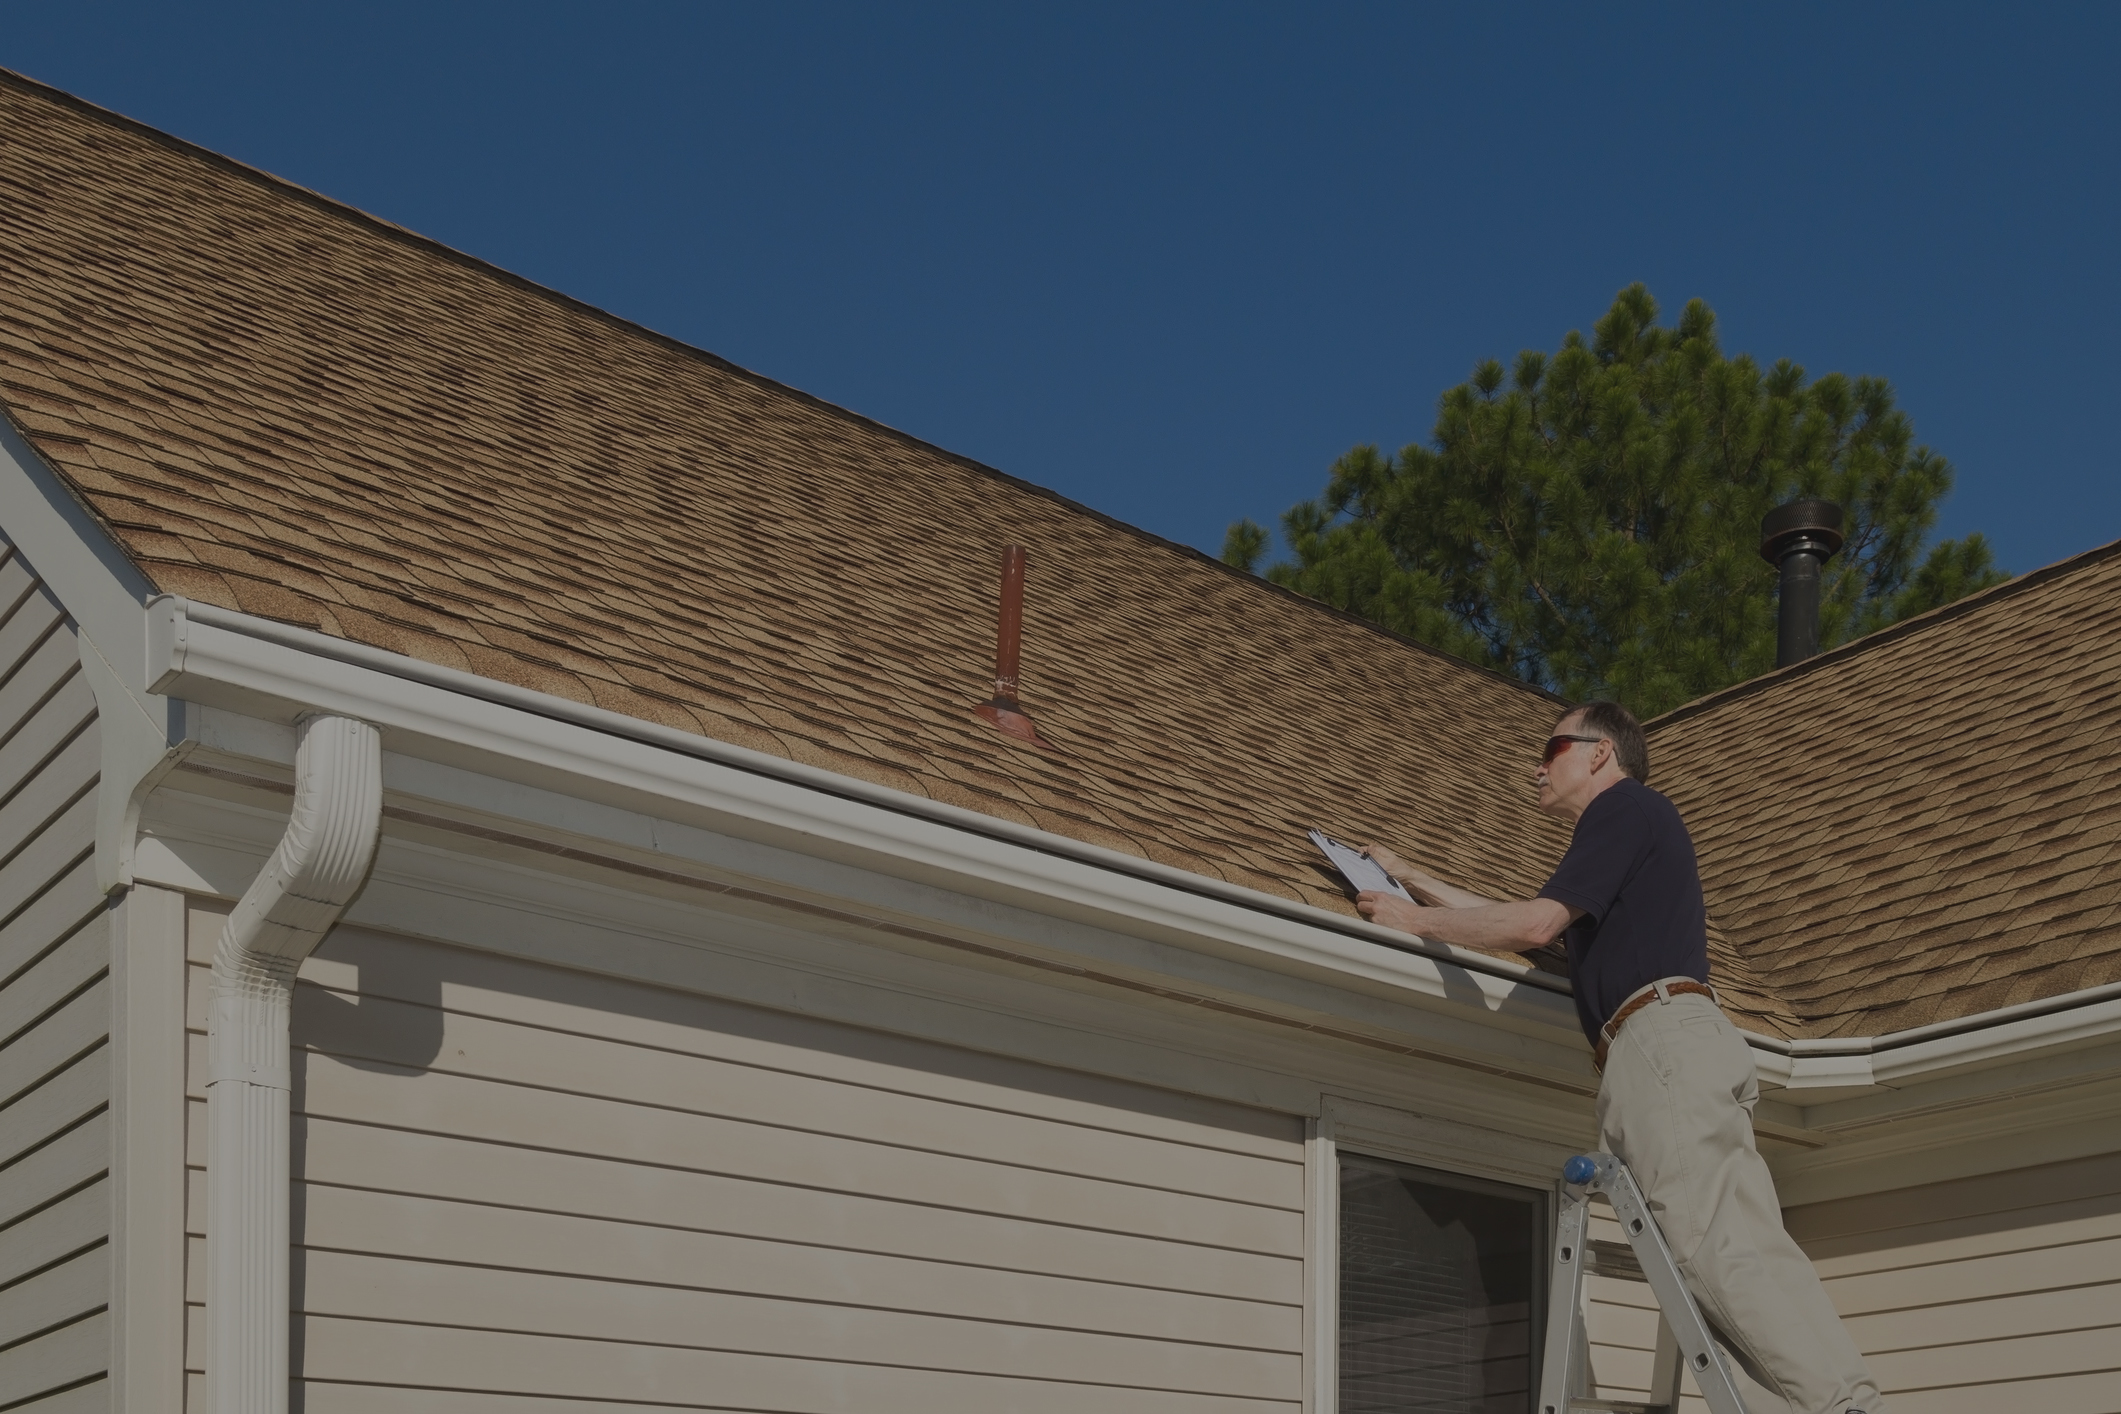 Home Inspector Performing Roof Inspection